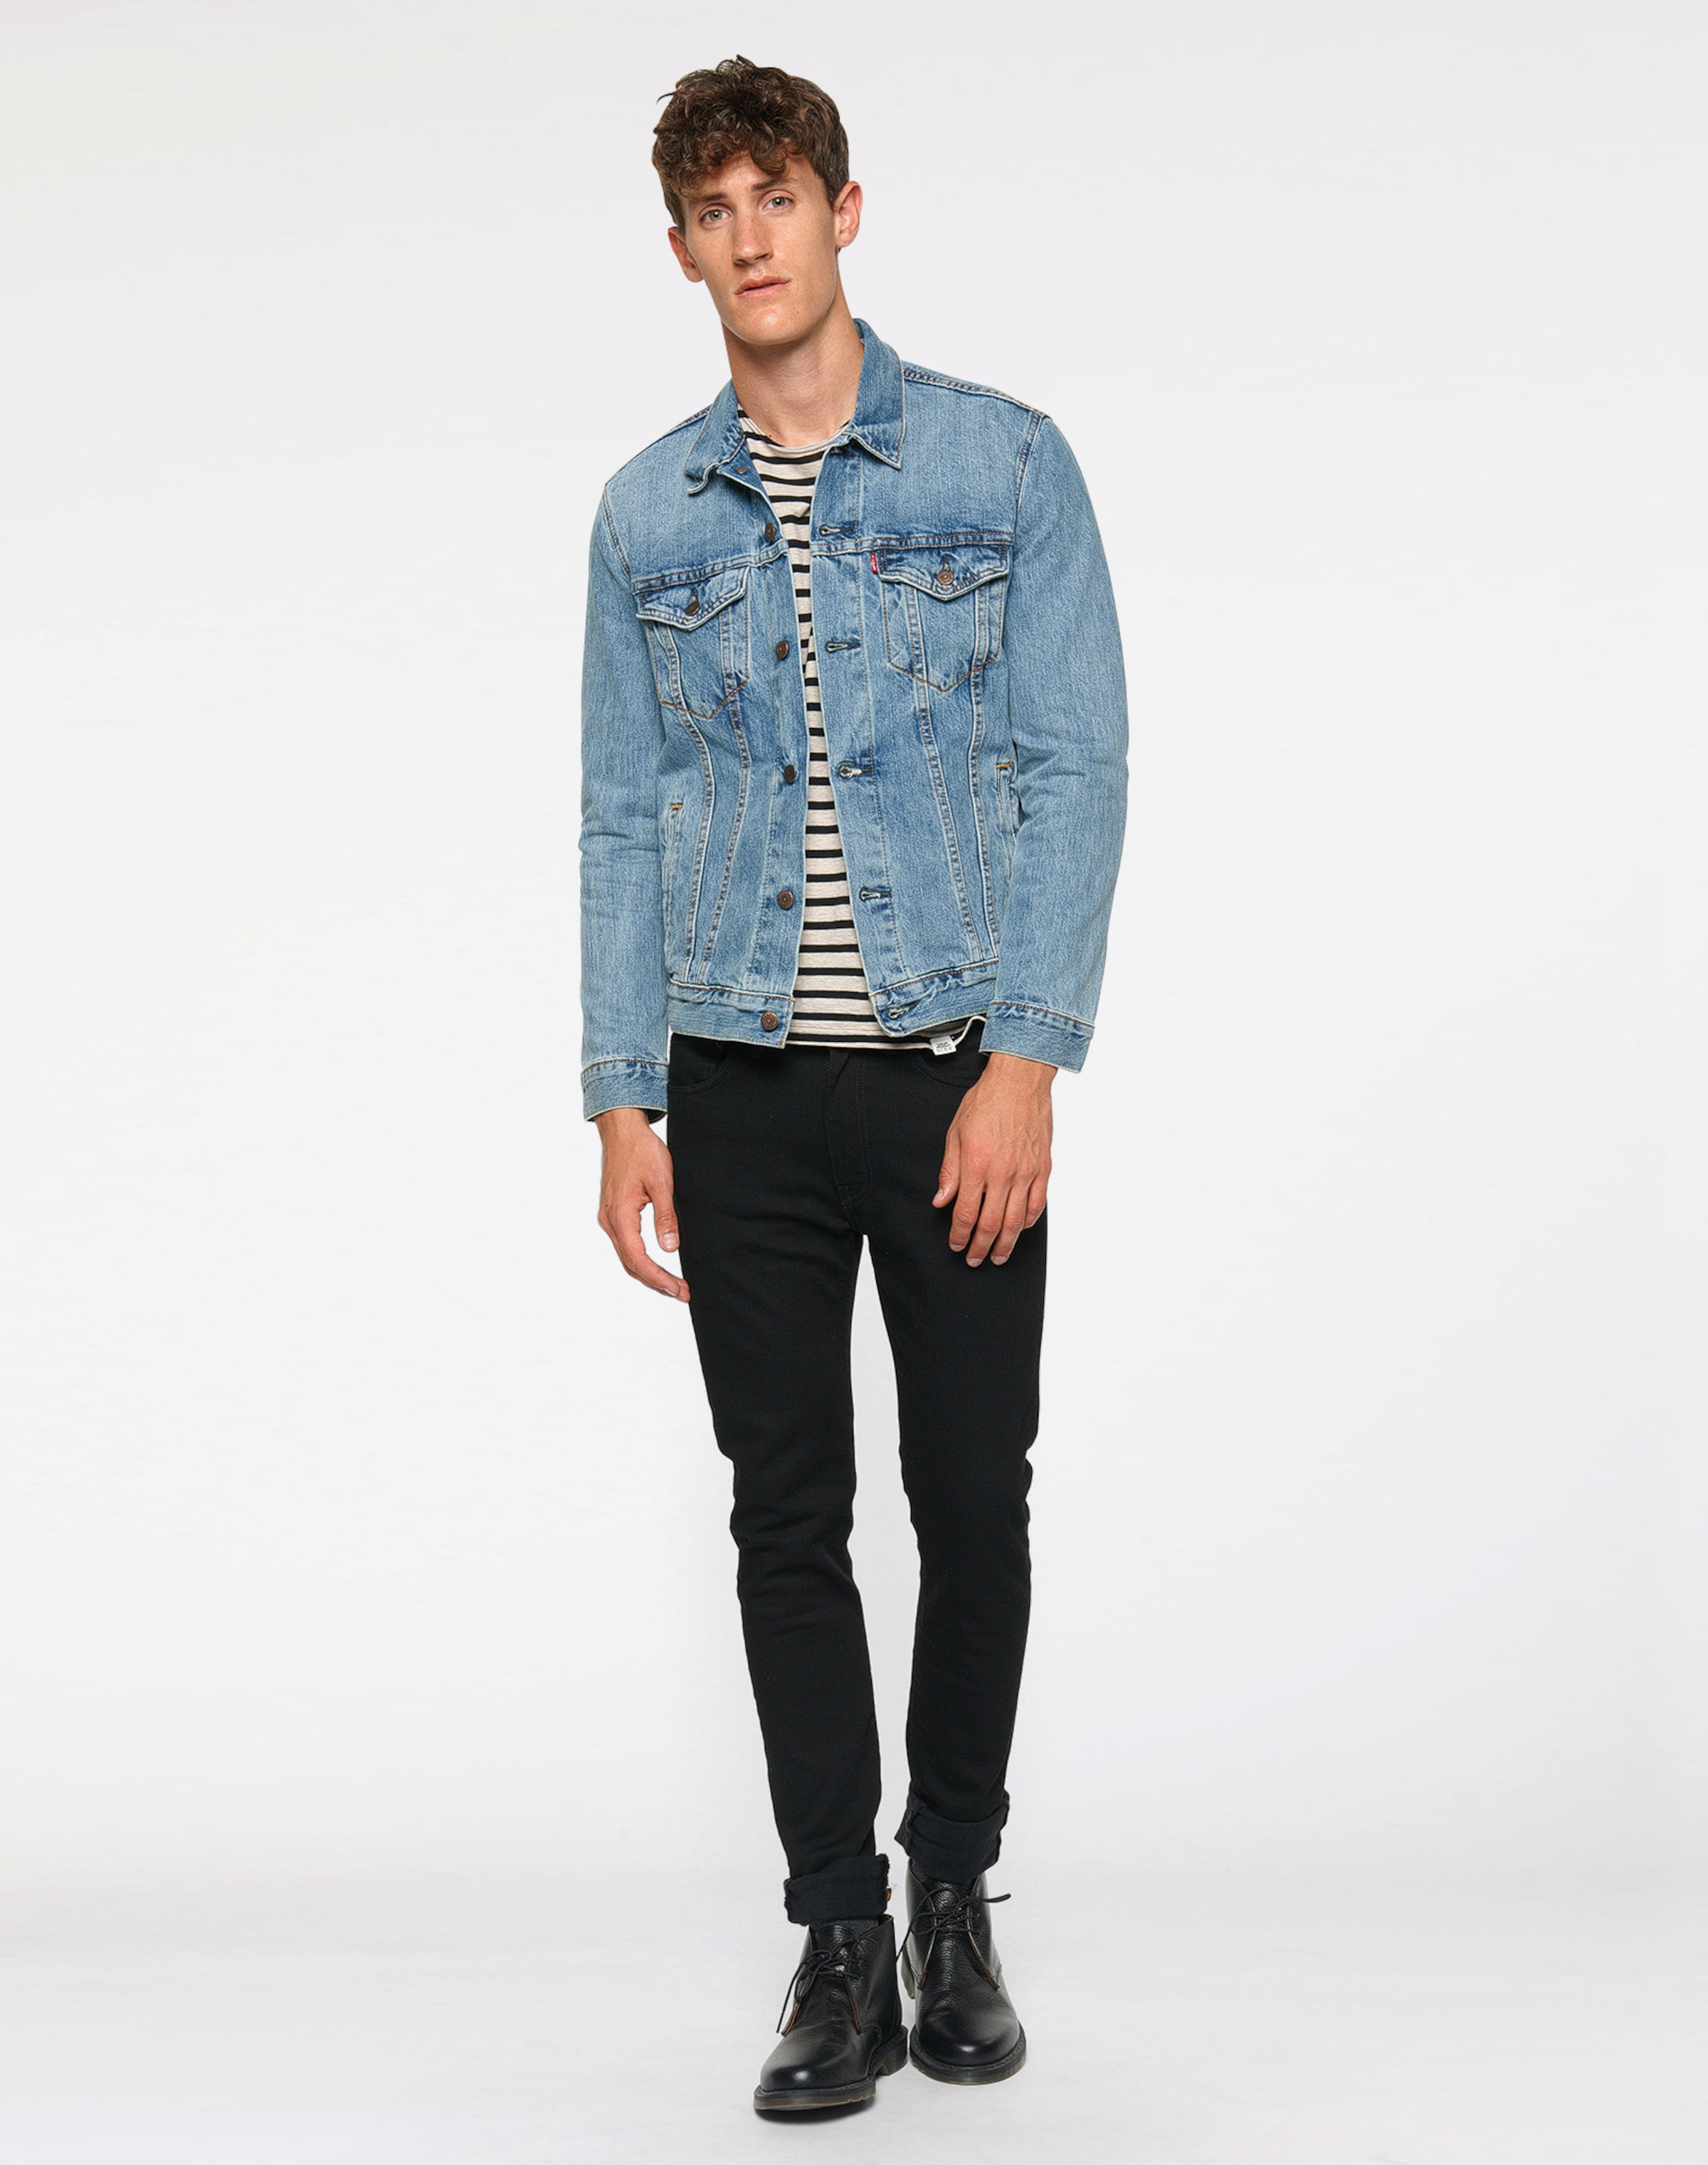 En 'the Noir Veste saison Trucker' Mi Levi's Denim PZiXkuO